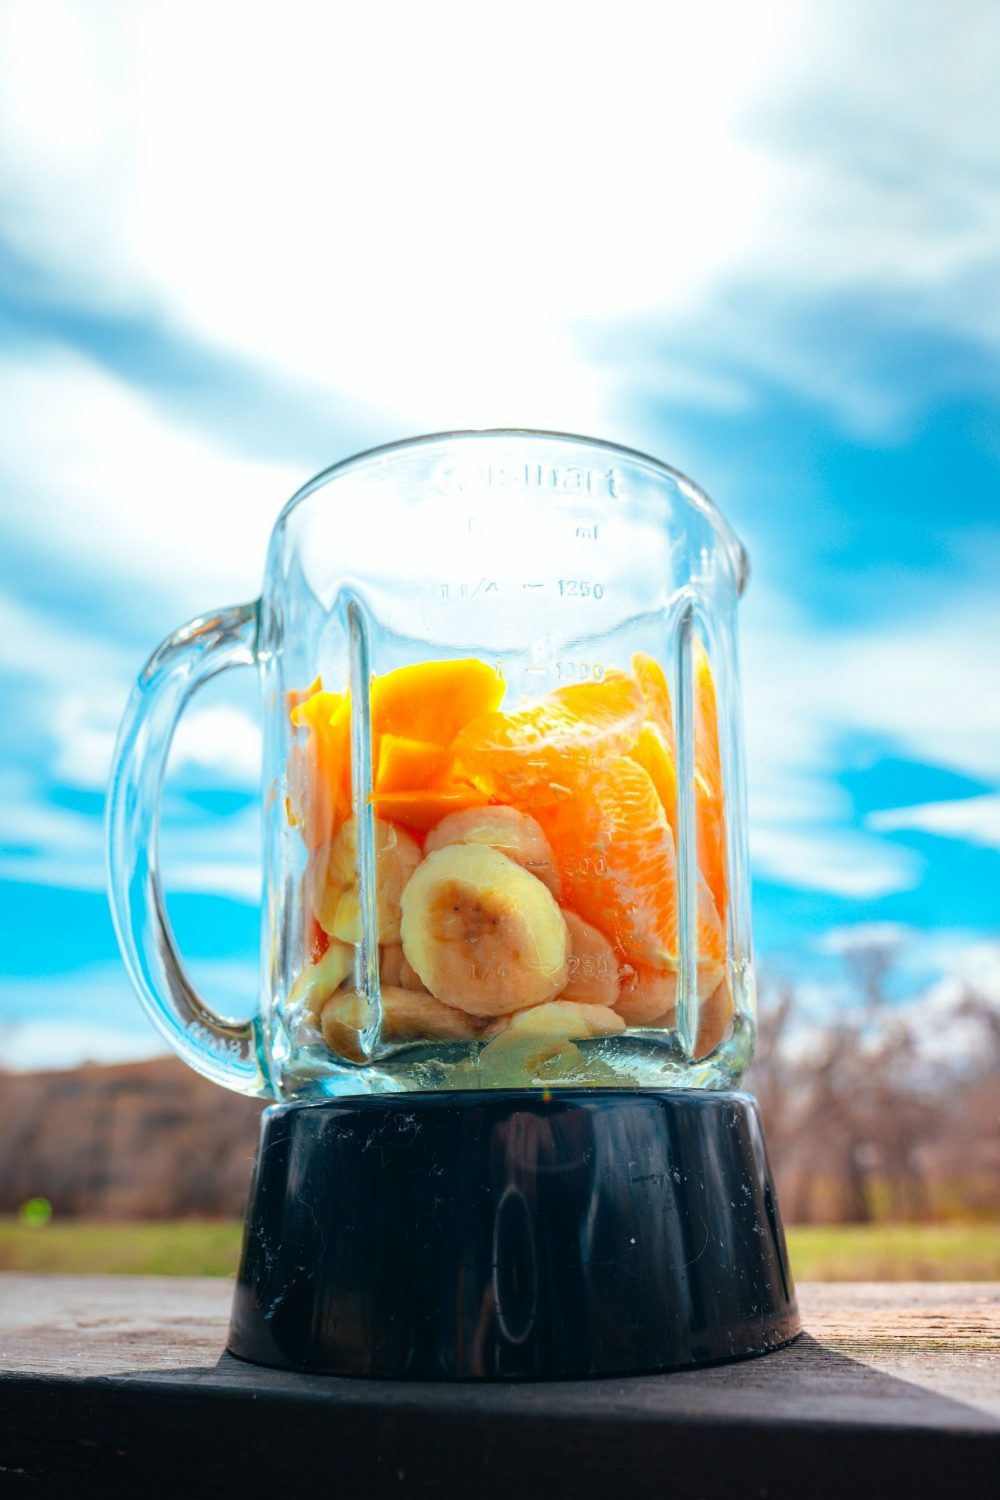 A blender with fruit in it